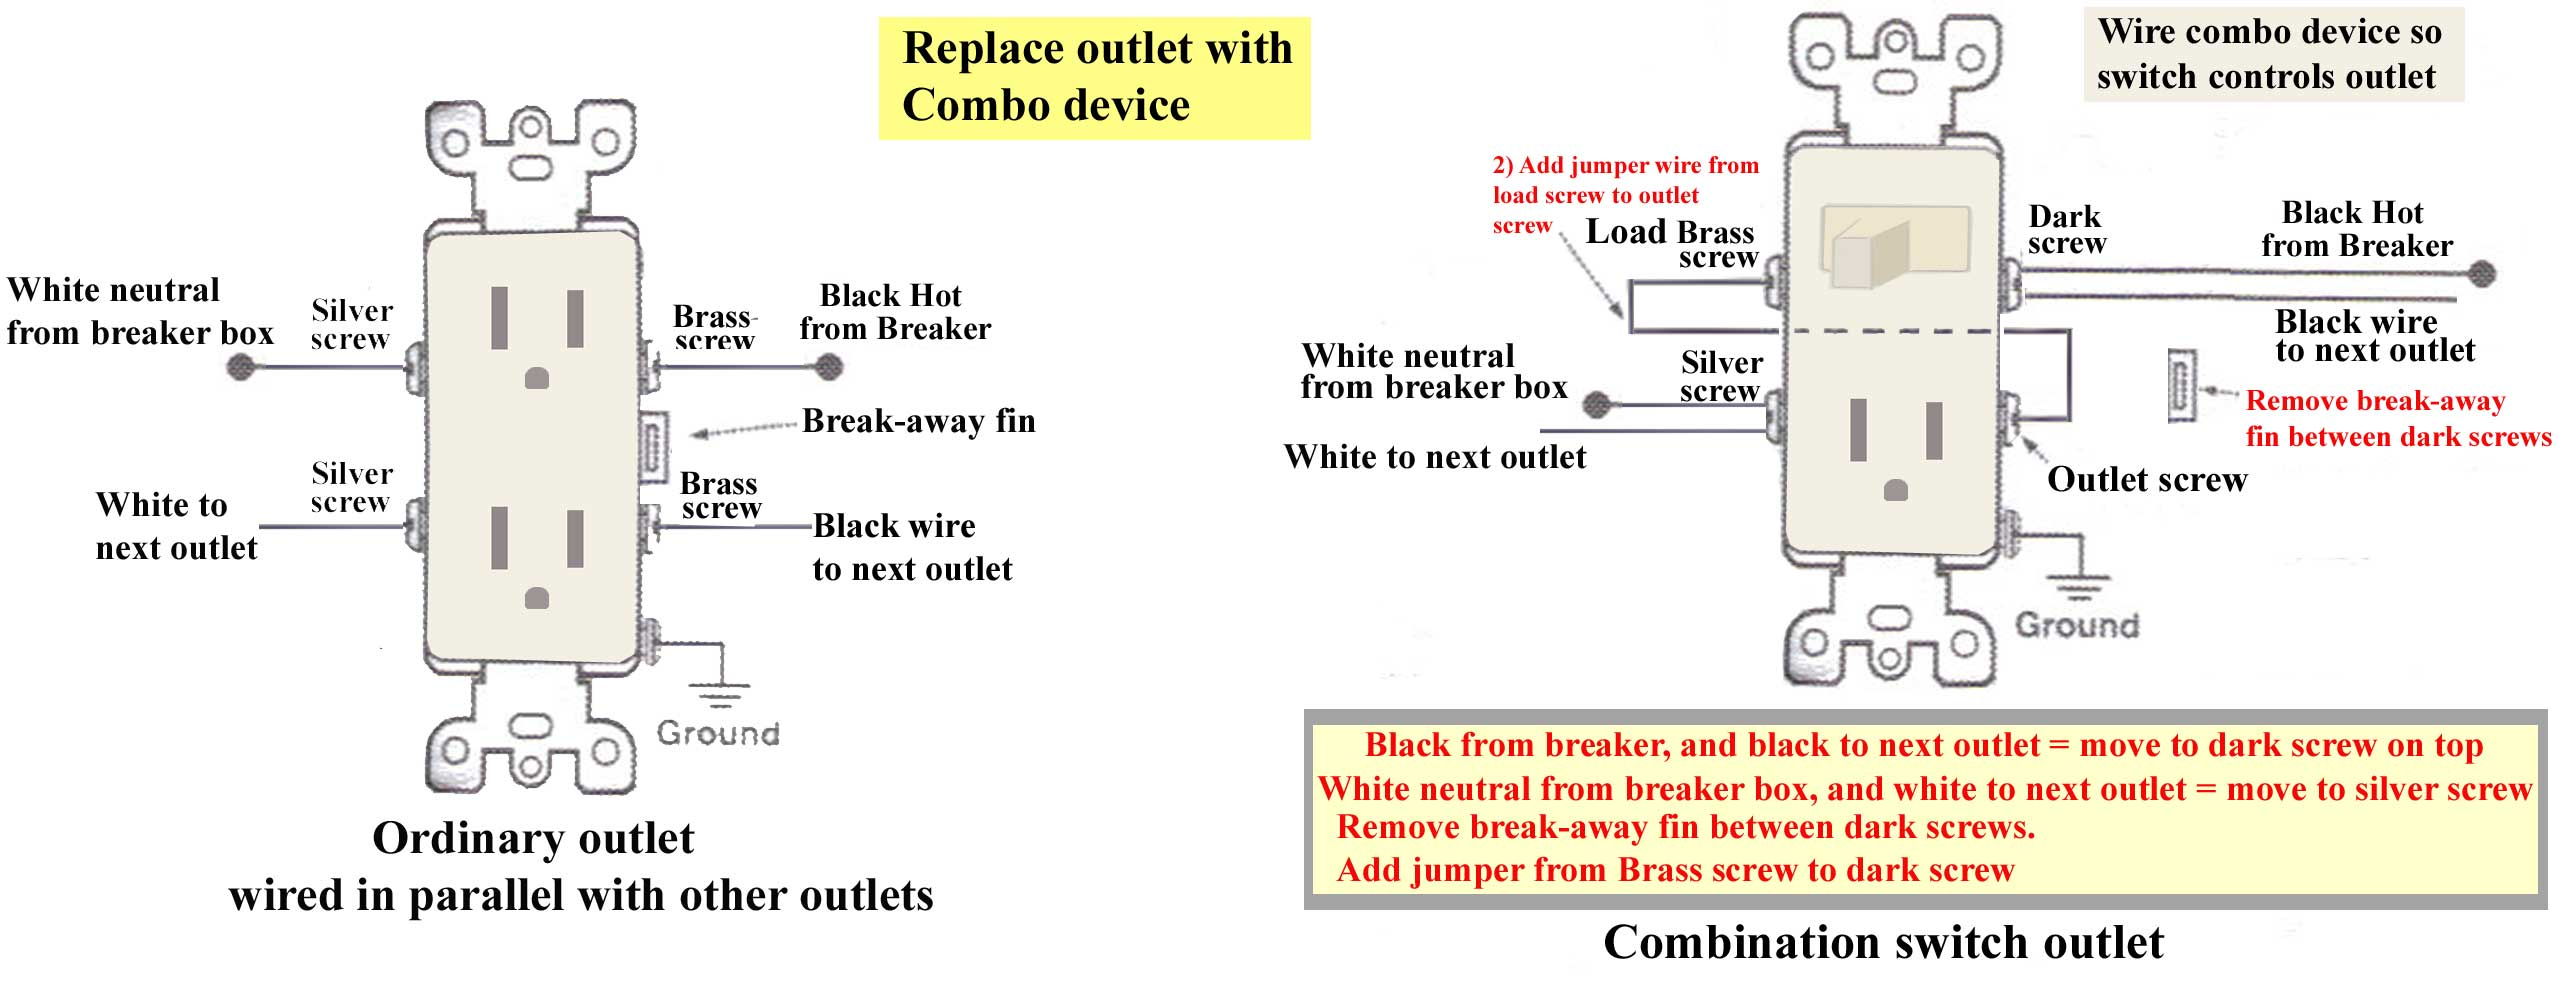 Combo switch replaces outlet 900 how to replace outlet with combo switch light switch outlet combo wiring diagram at bayanpartner.co